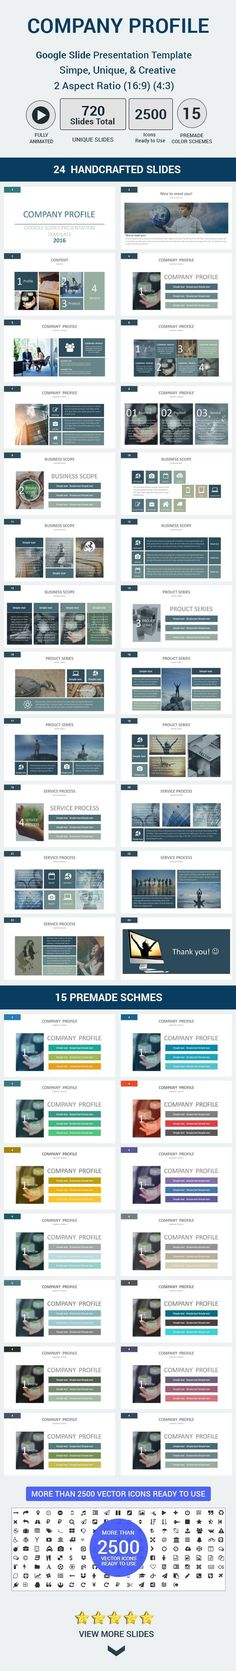 Free 38 Pages Company Profile Template - Smashfreakz Design - free company profile template word